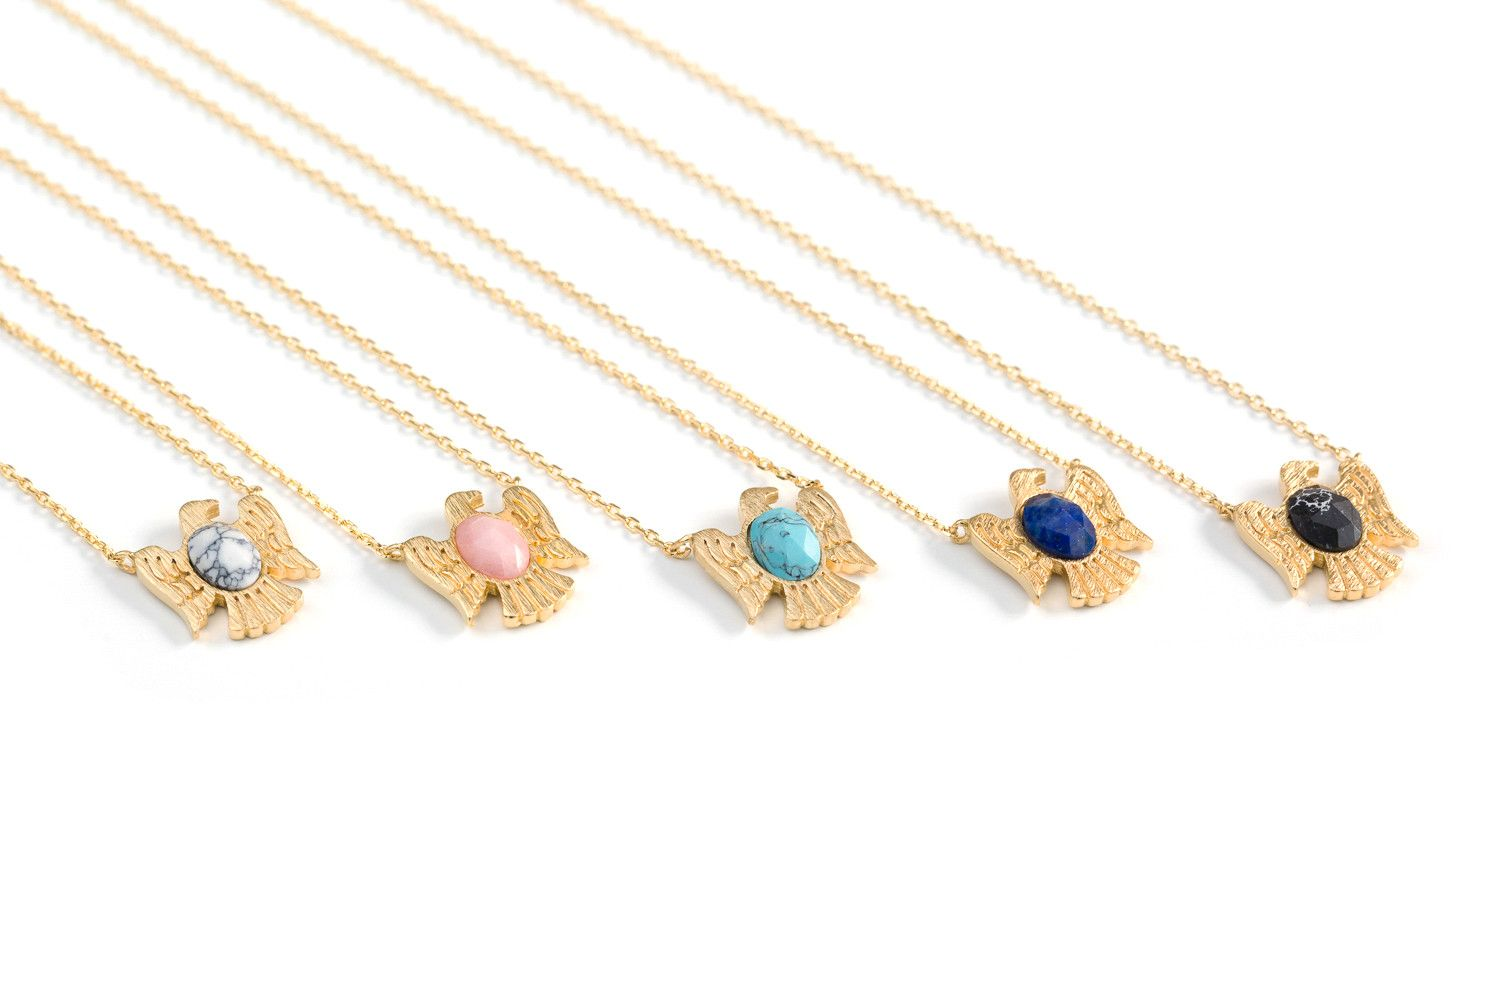 * 2016 F/W Season Jewelry Trend: Gemstone collection* gemstone necklace-TA--Your favorite ways to sparkle. Trending Stones-Turquoise; Opal; Moonstone; Pearl; Aquamarine;Blue Topaz ;Lapis Lazuli; Ruby. Over the centuries, various cultures have contributed to the legend and lore surrounding gemstones. These special minerals will make you more attractive with magical power